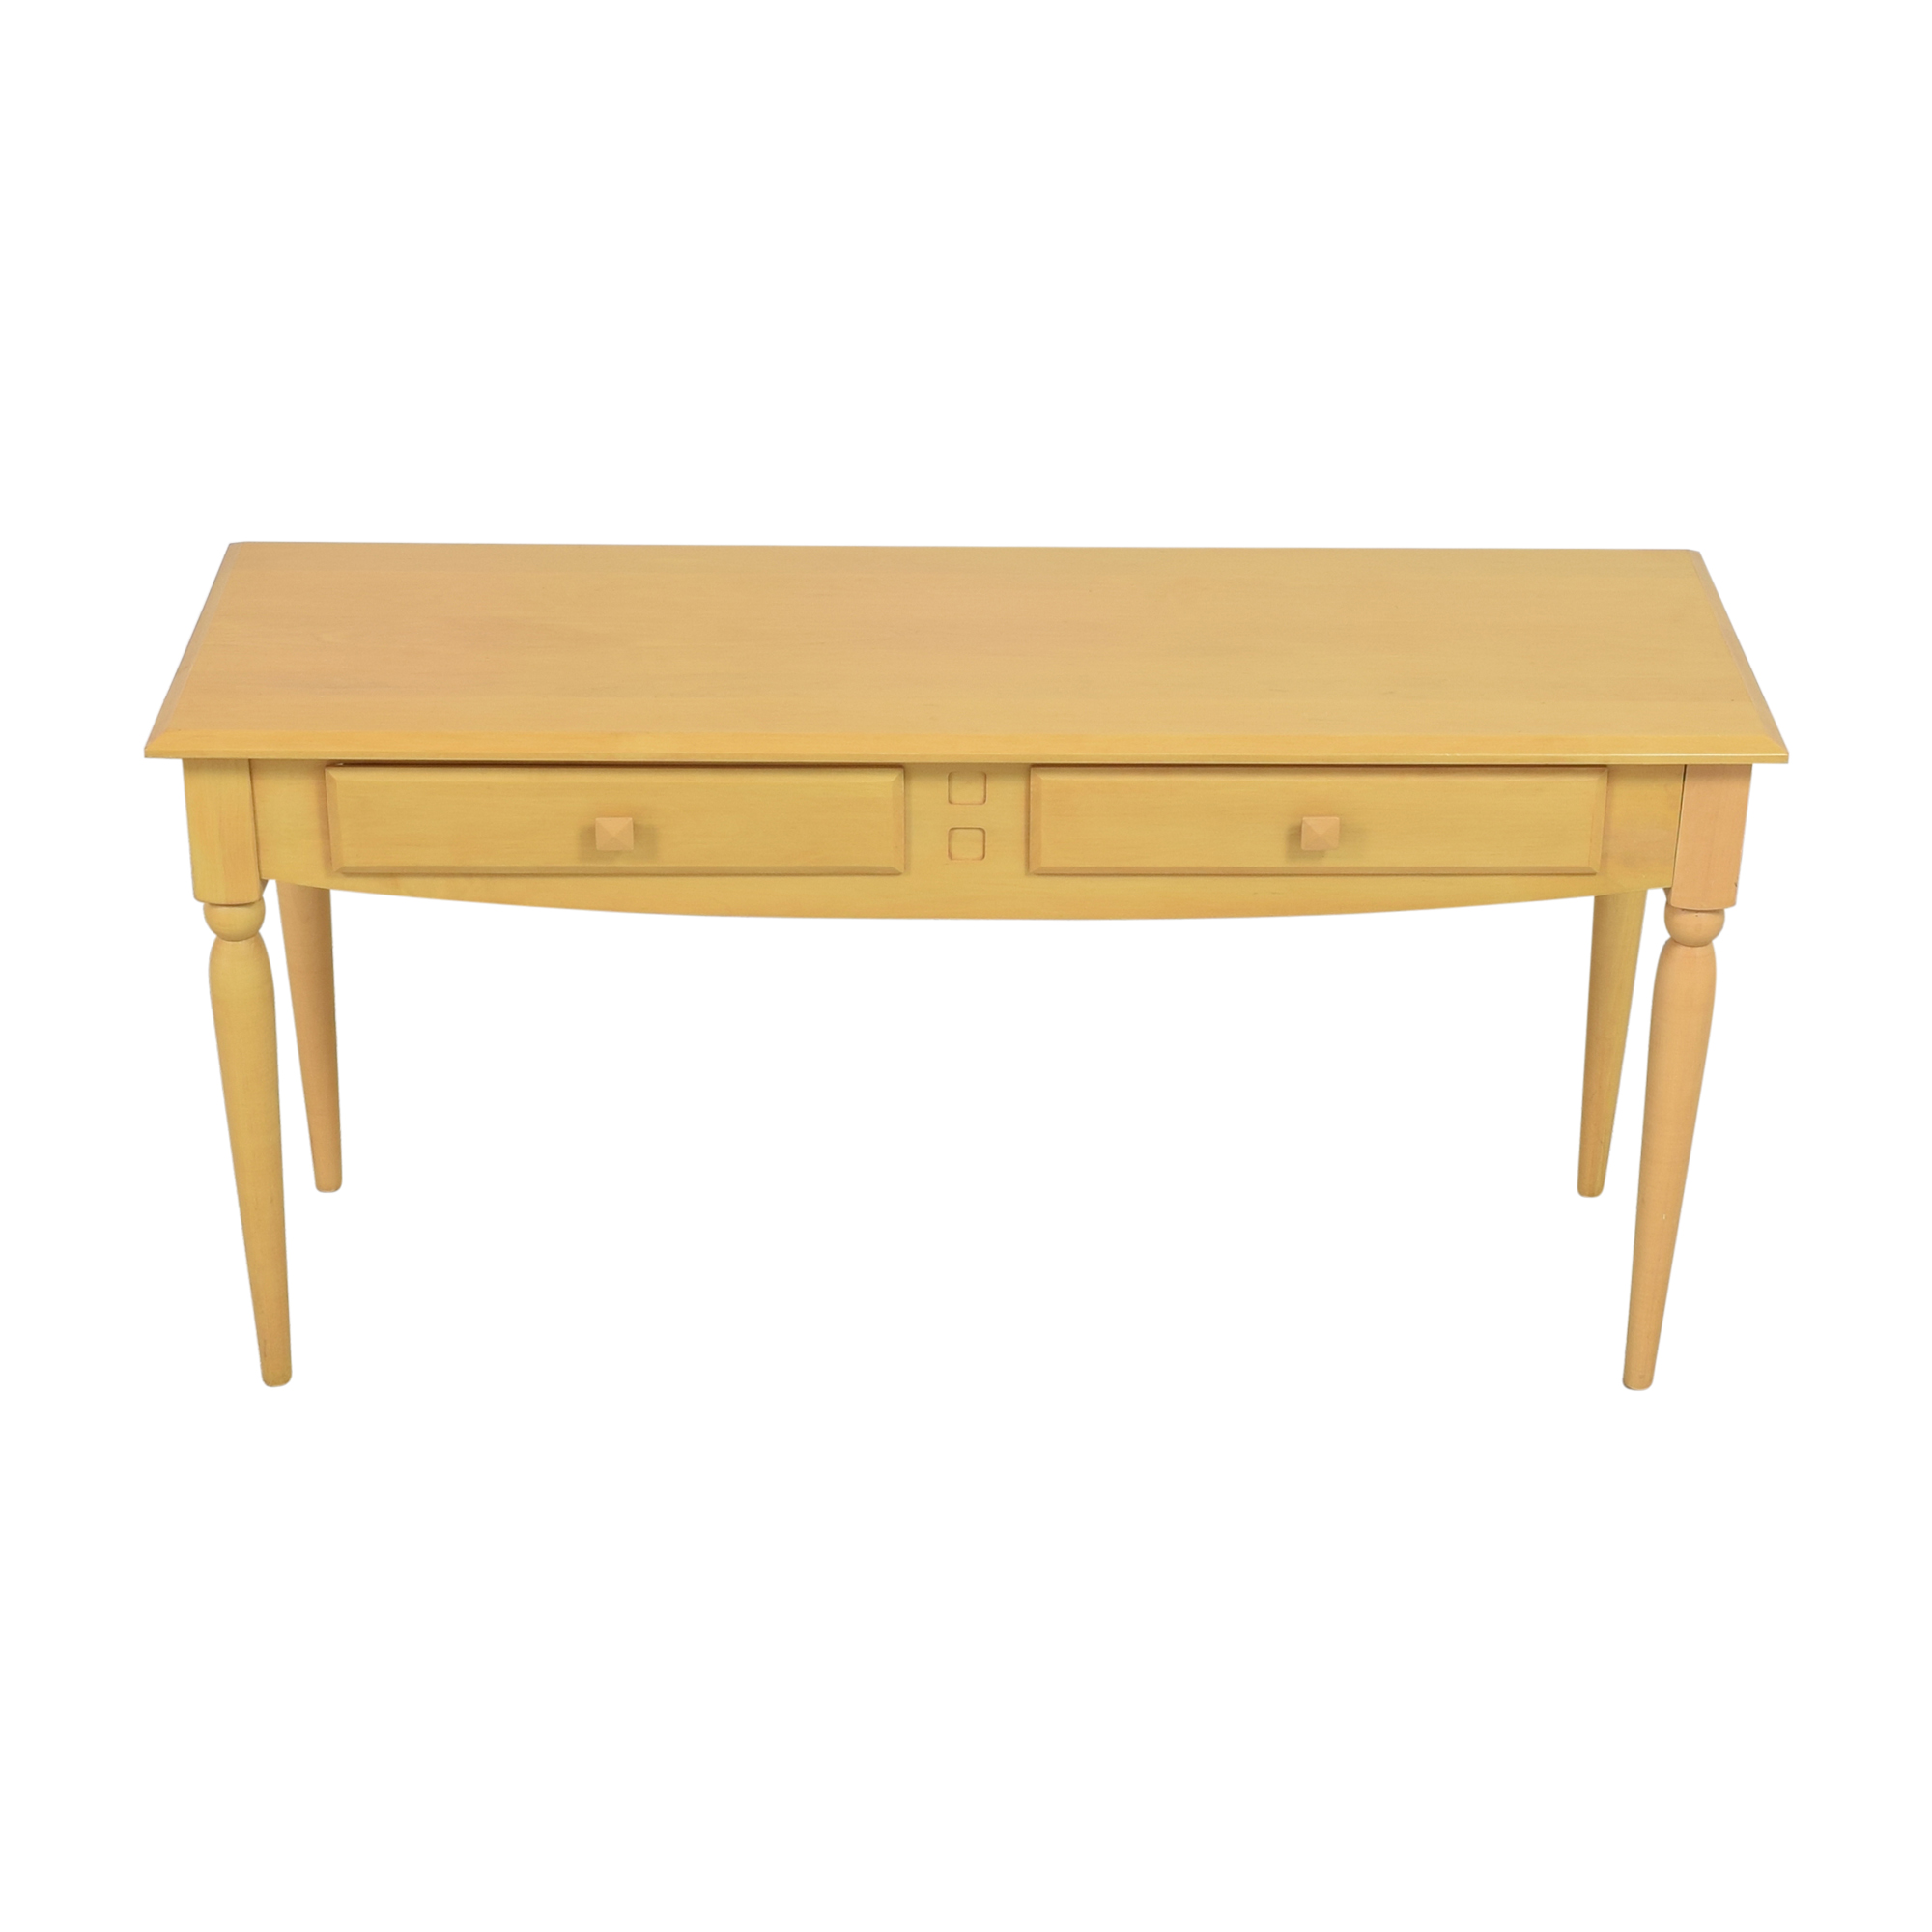 Ethan Allen Ethan Allen American Dimensions Console Table ct